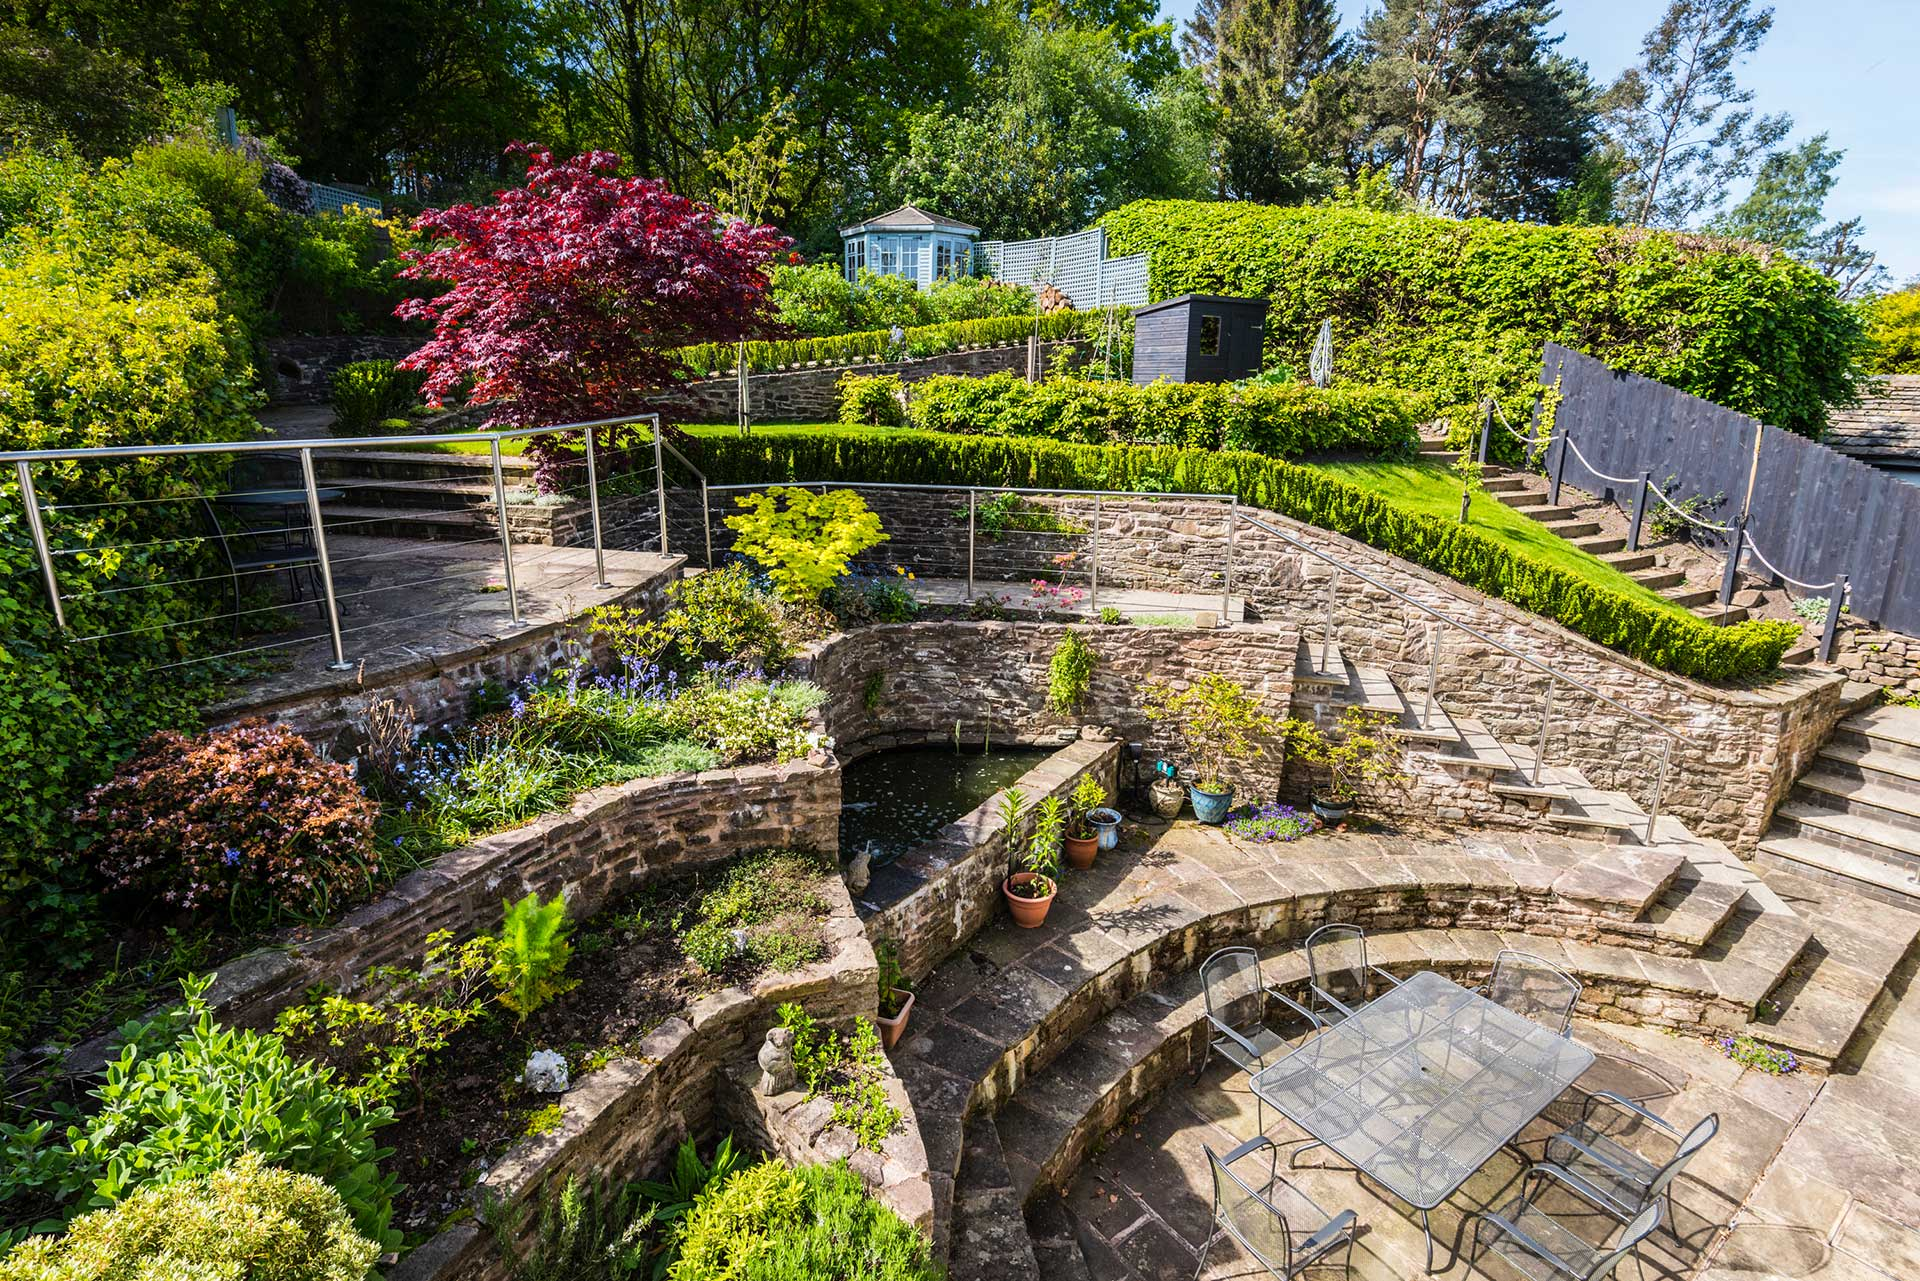 Bring in the light - A Challengingly steep garden